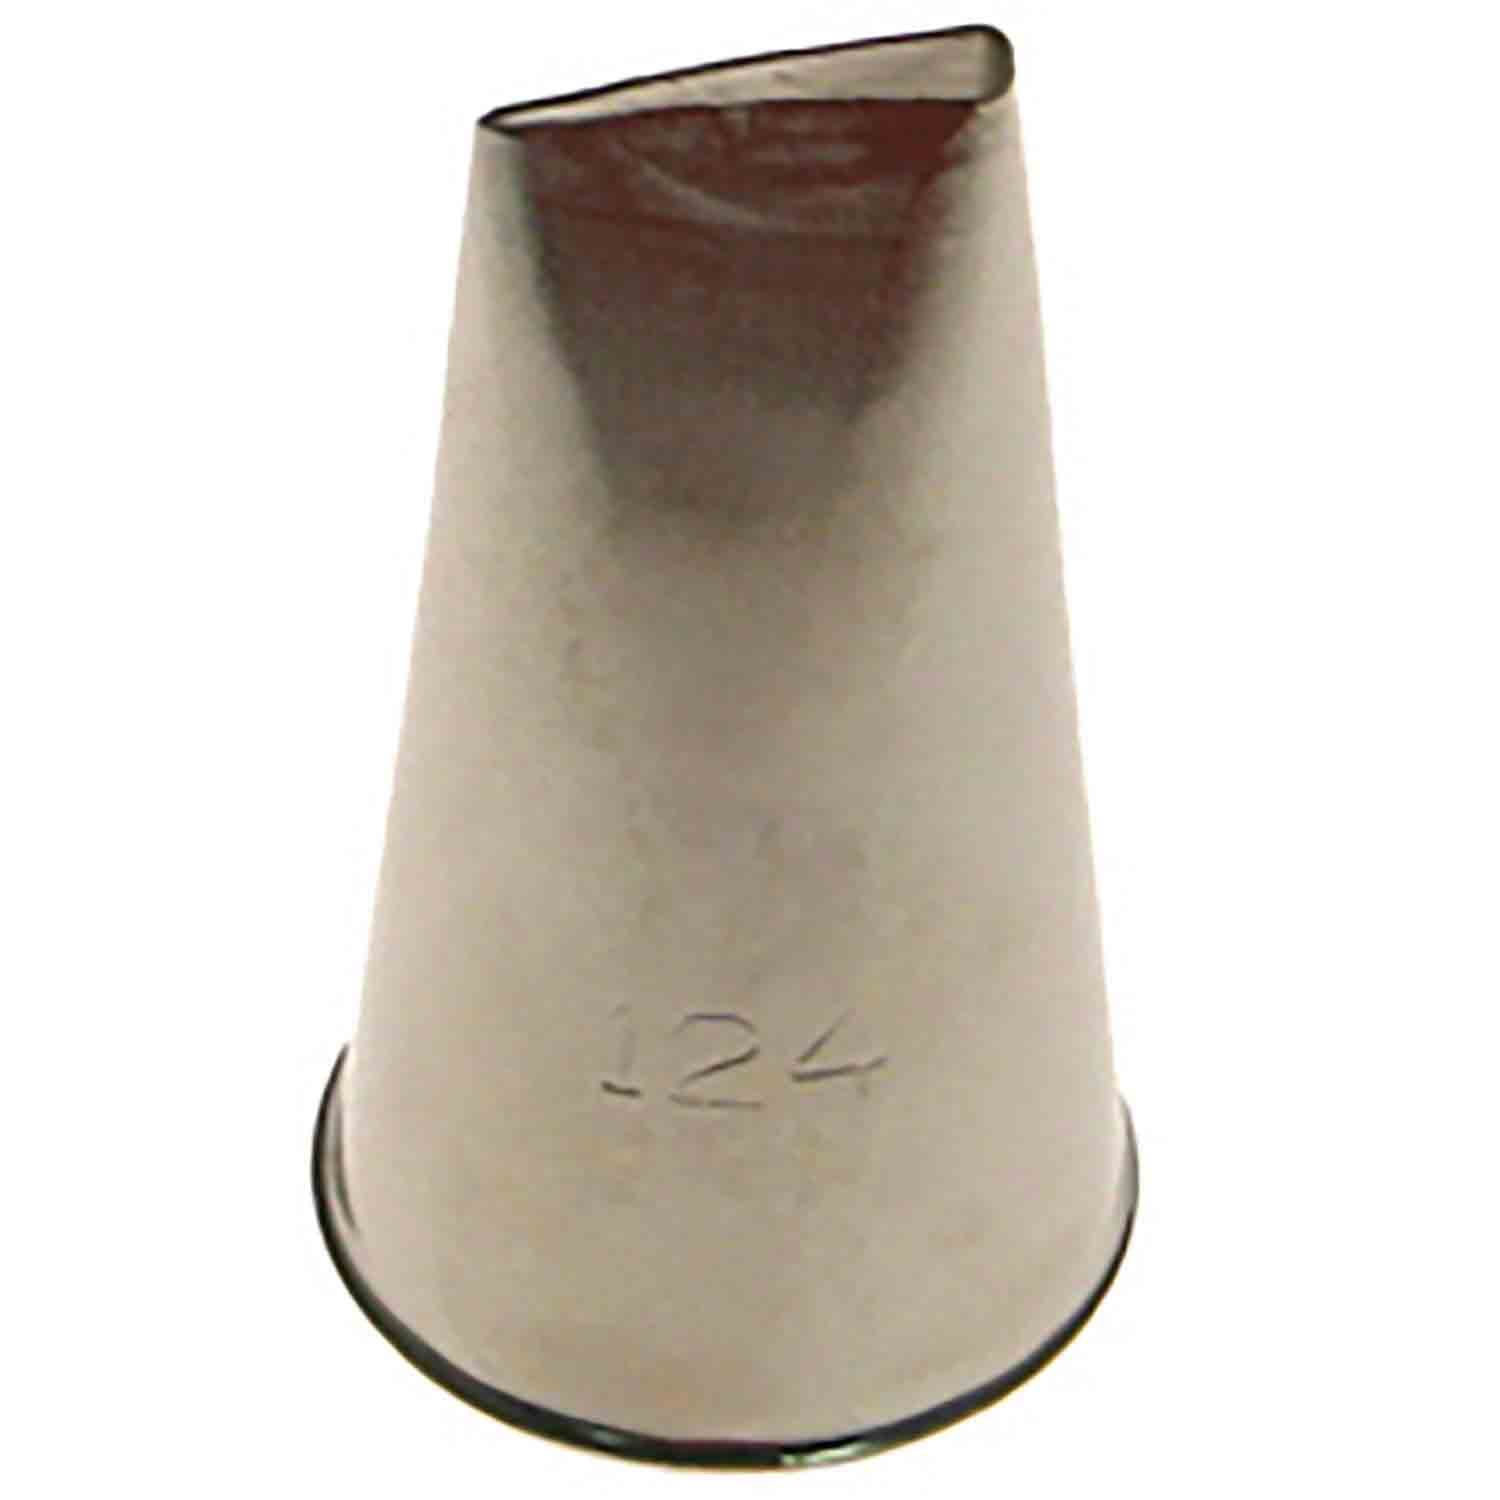 #124 Petal Stainless Steel Tip